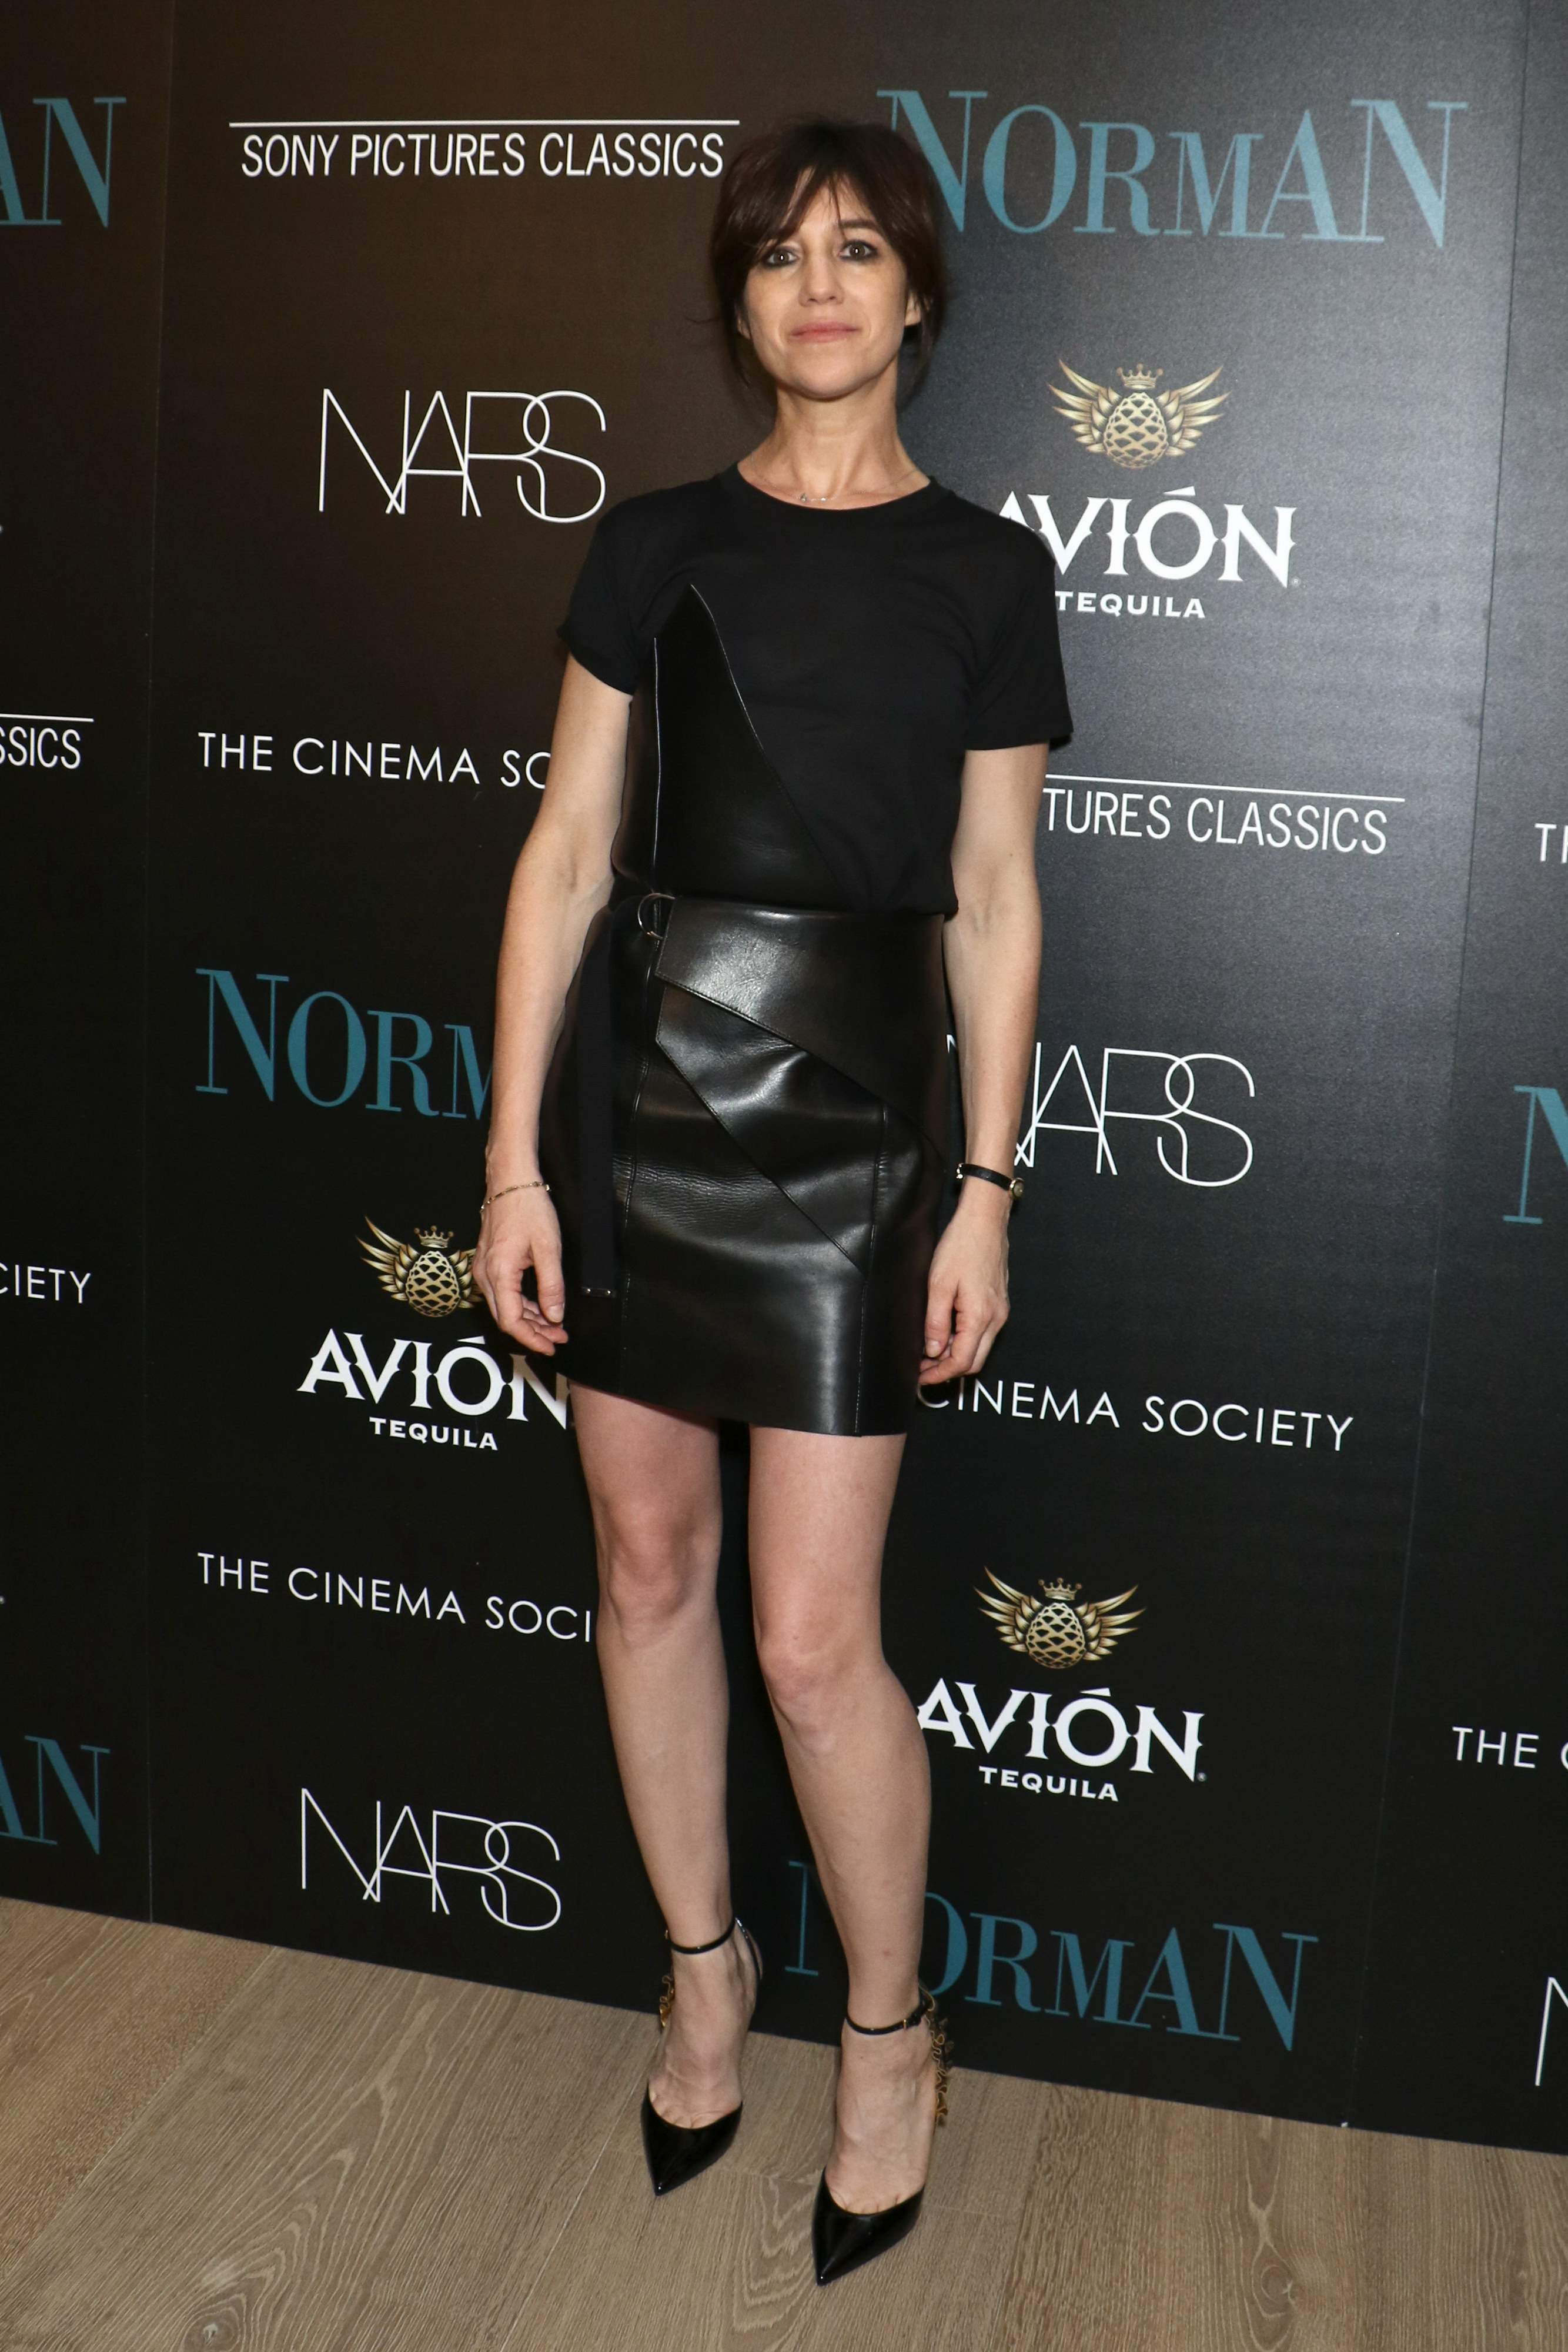 Charlotte Gainsbourg attends the premiere of Norman